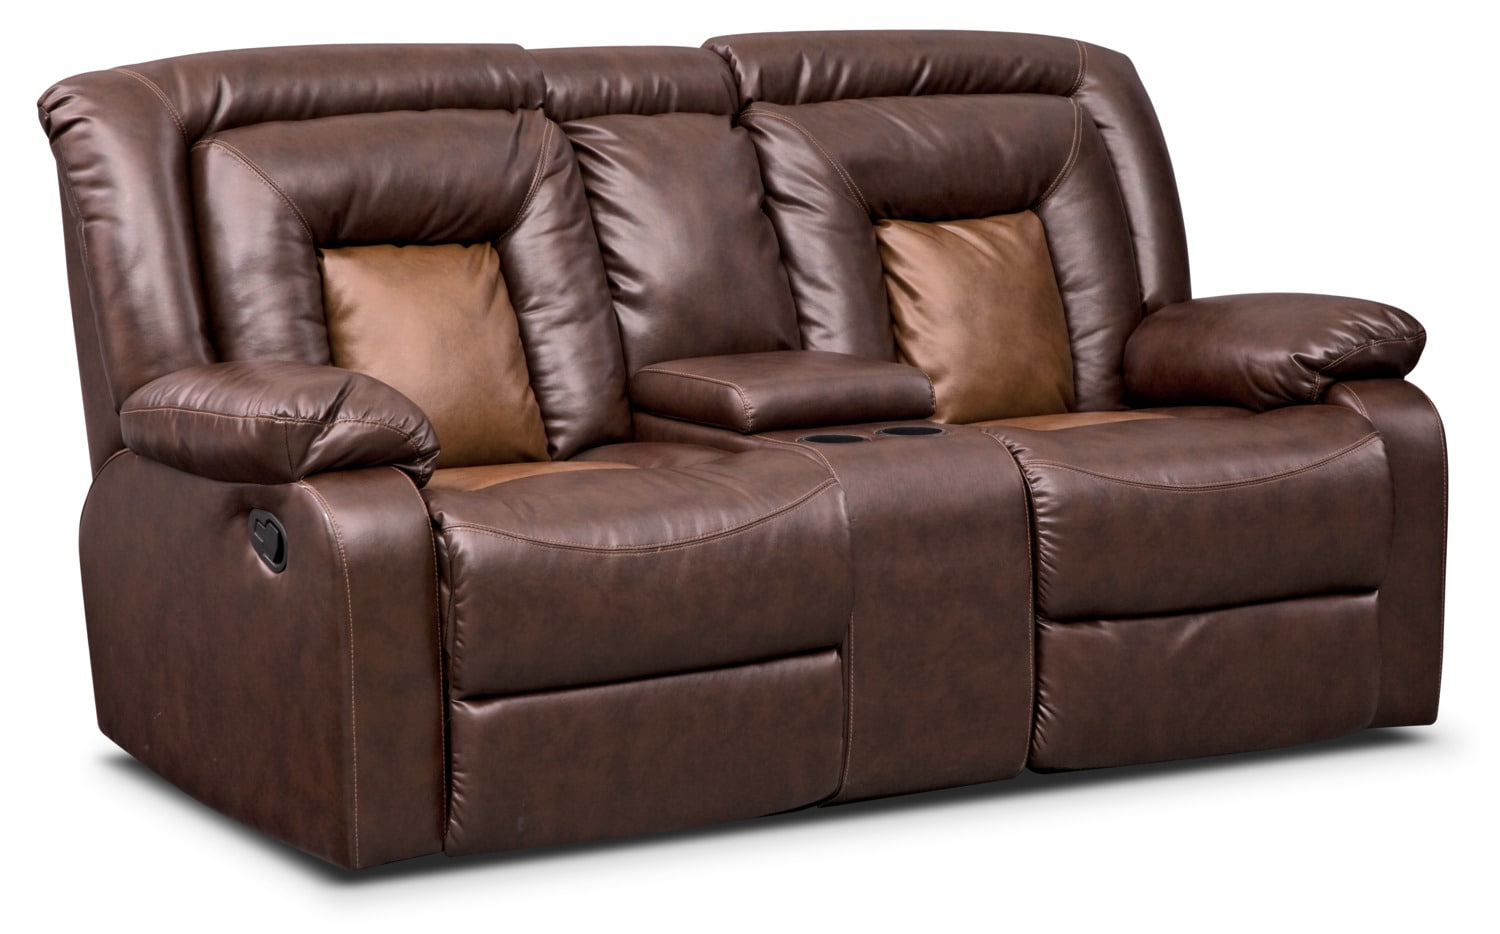 Hover to zoom  sc 1 st  Value City Furniture & Mustang Dual-Reclining Loveseat with Console - Brown | Value City ... islam-shia.org